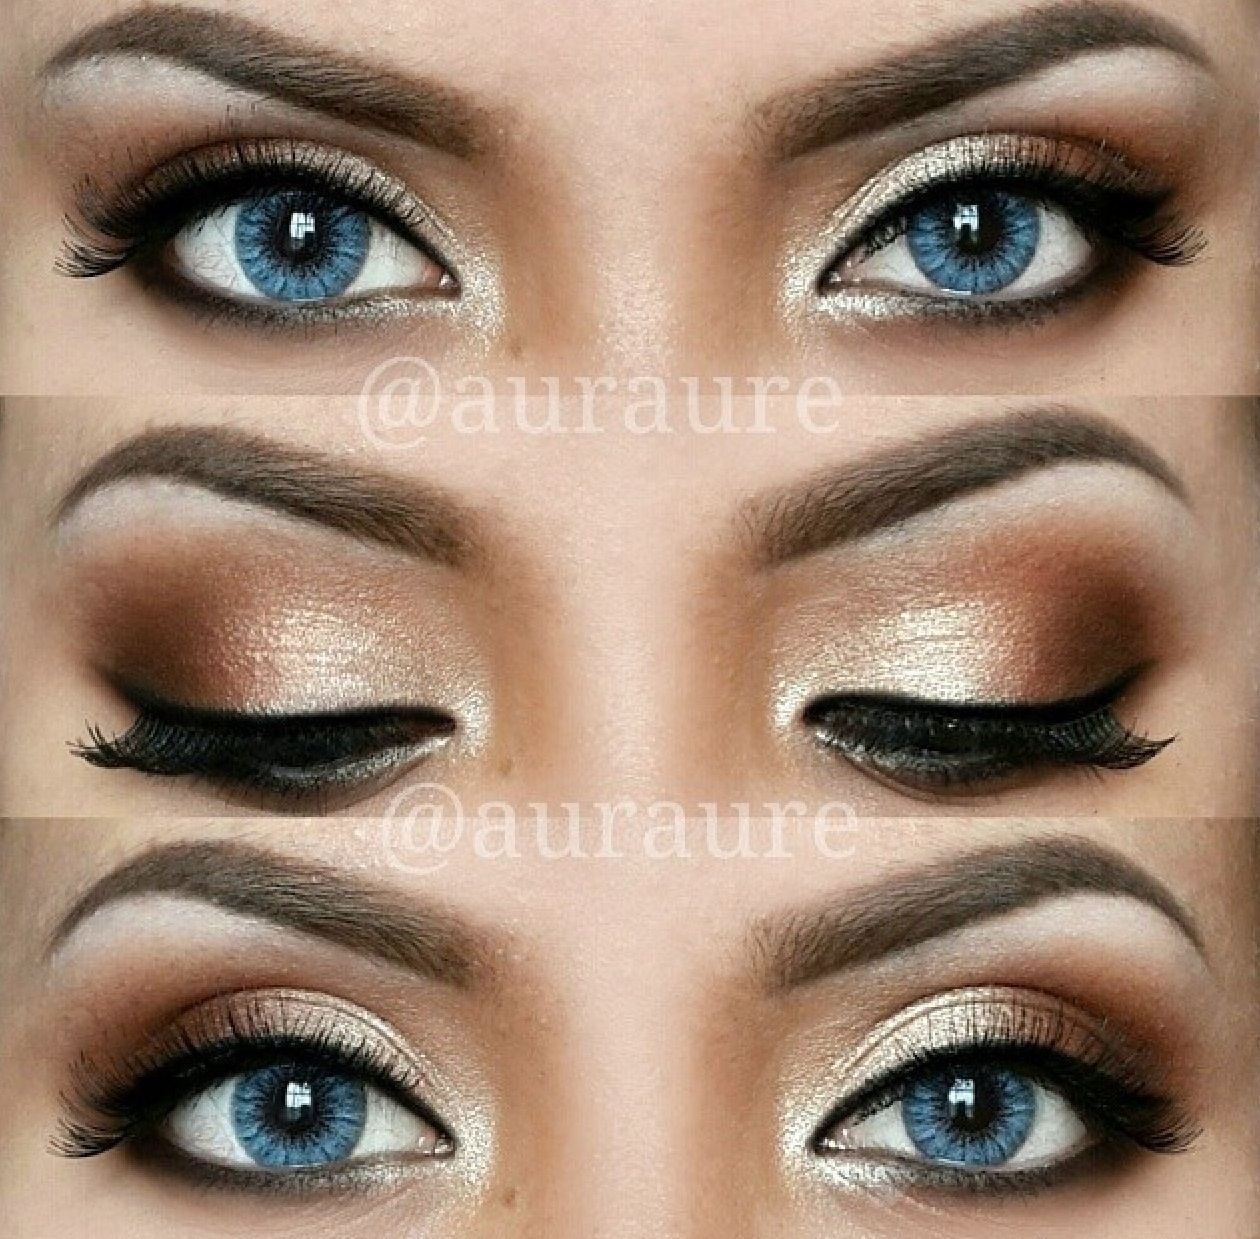 12 Easy Ideas For Prom Makeup For Blue Eyes | Hair And Makeup for How To Apply Dramatic Eye Makeup For Blue Eyes